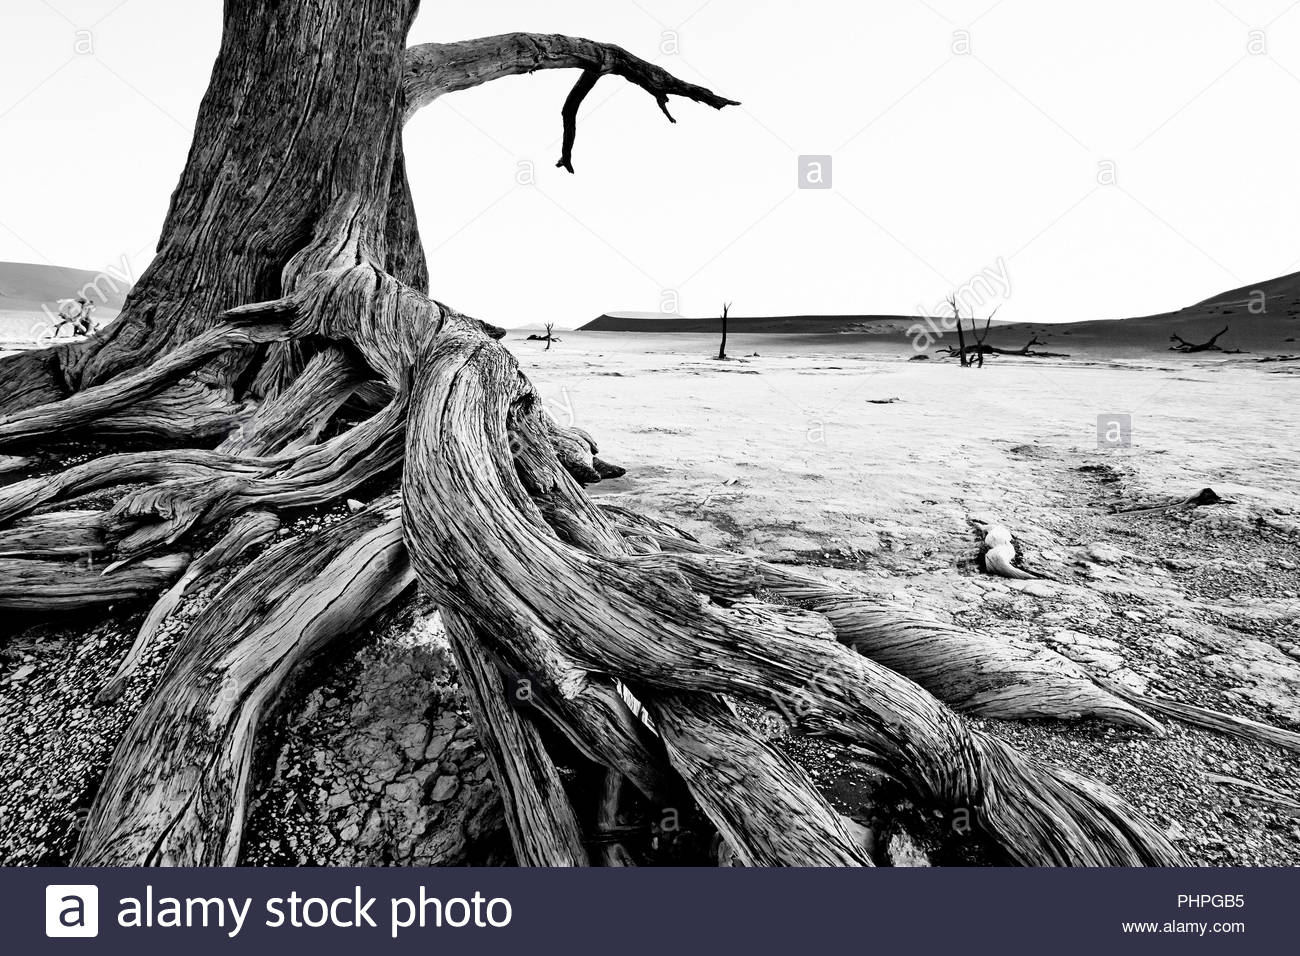 Tree in desert in Namibia - Stock Image